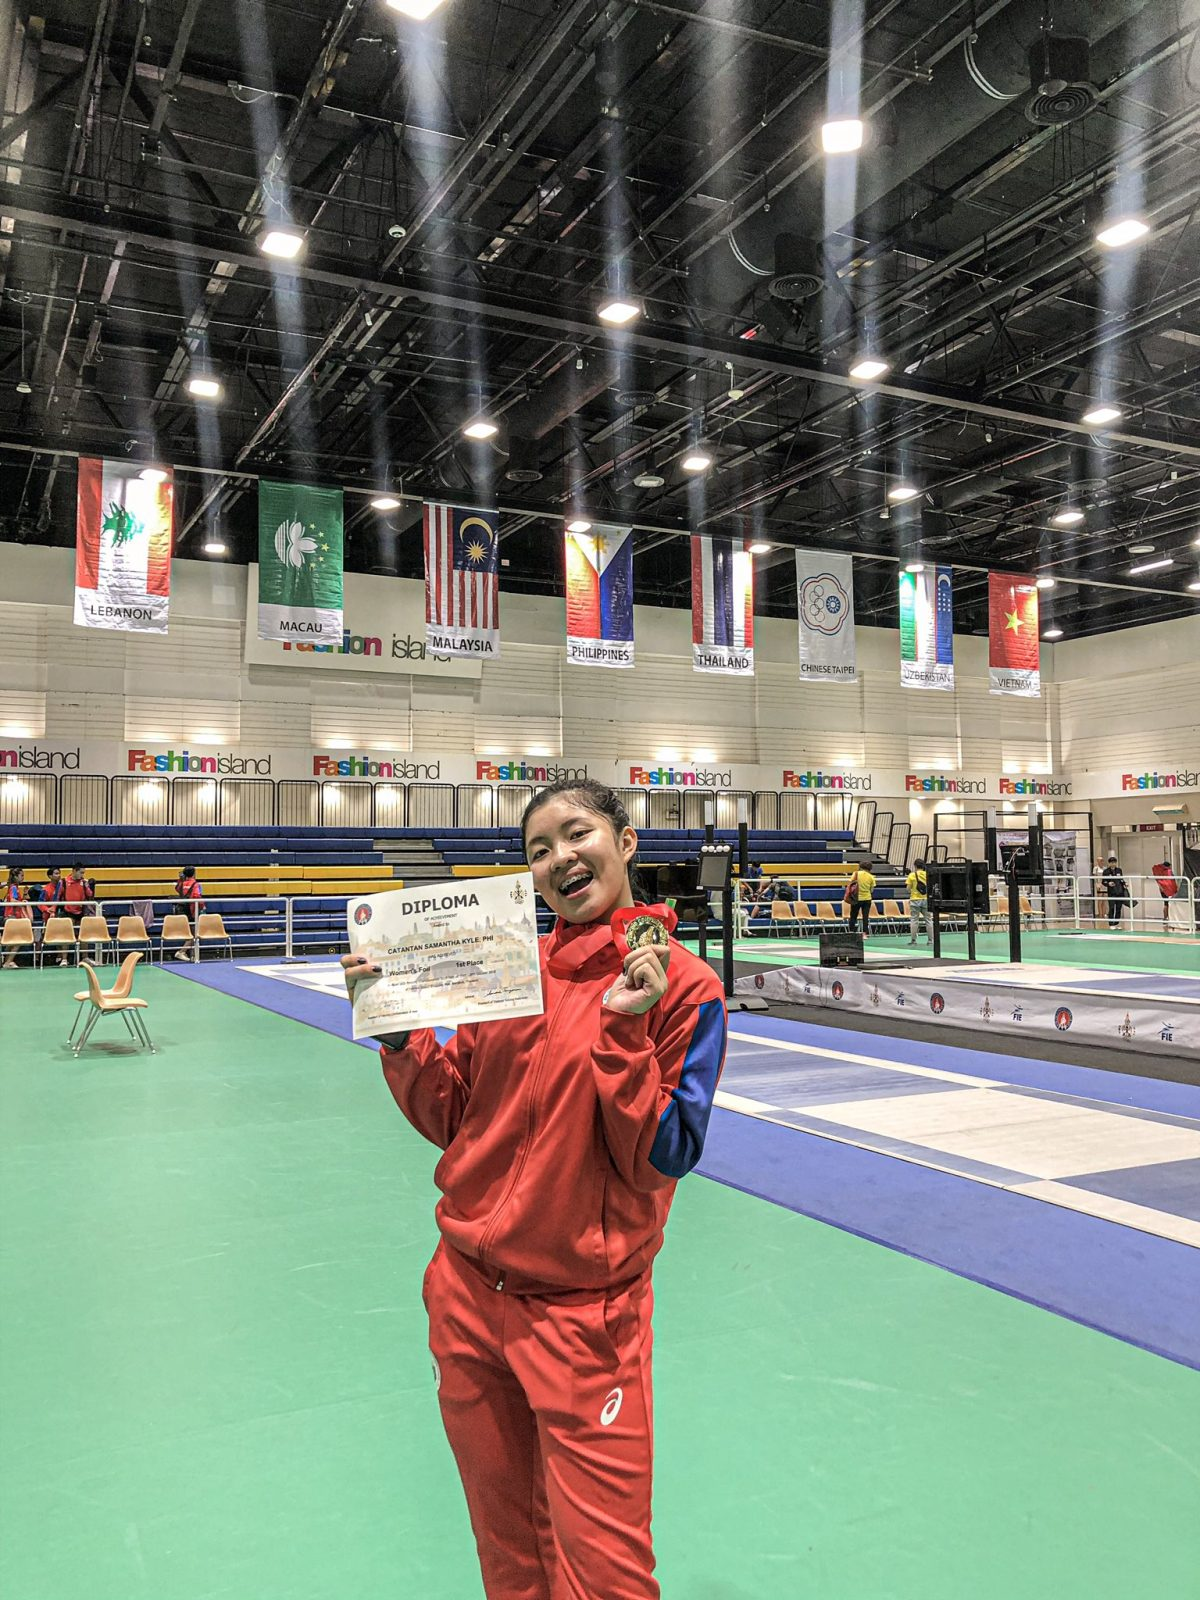 Samantha Asian Fencing Championship